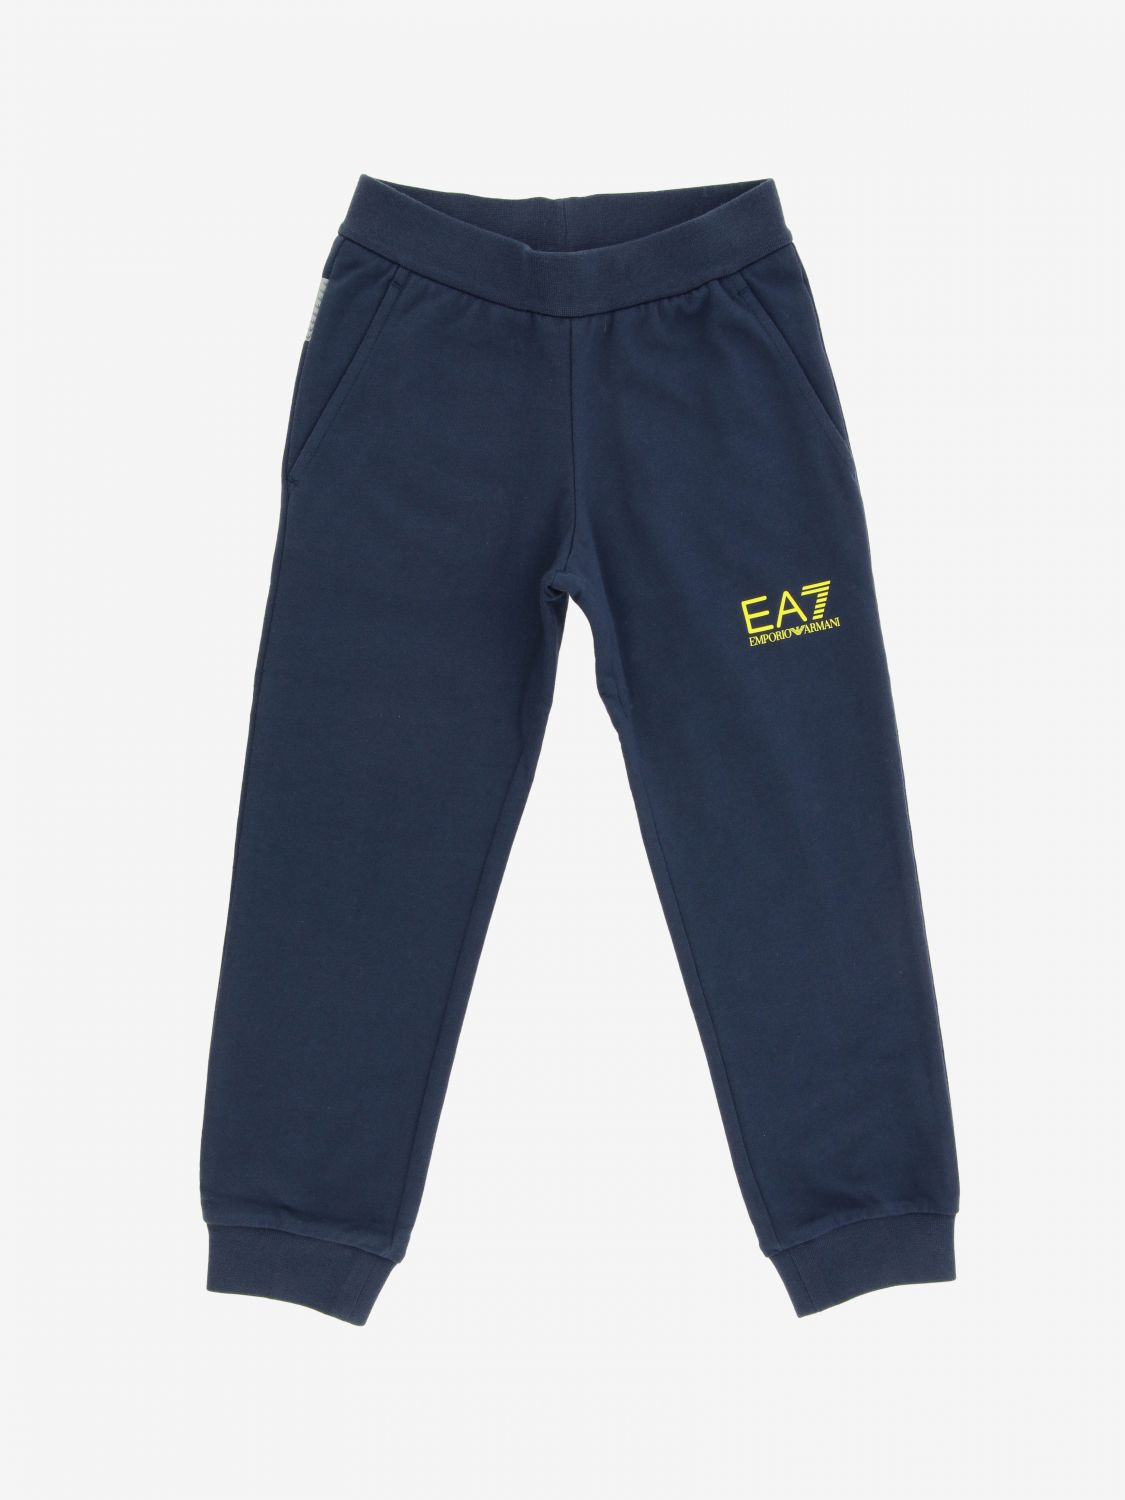 EA7 jogging trousers with logo blue 1